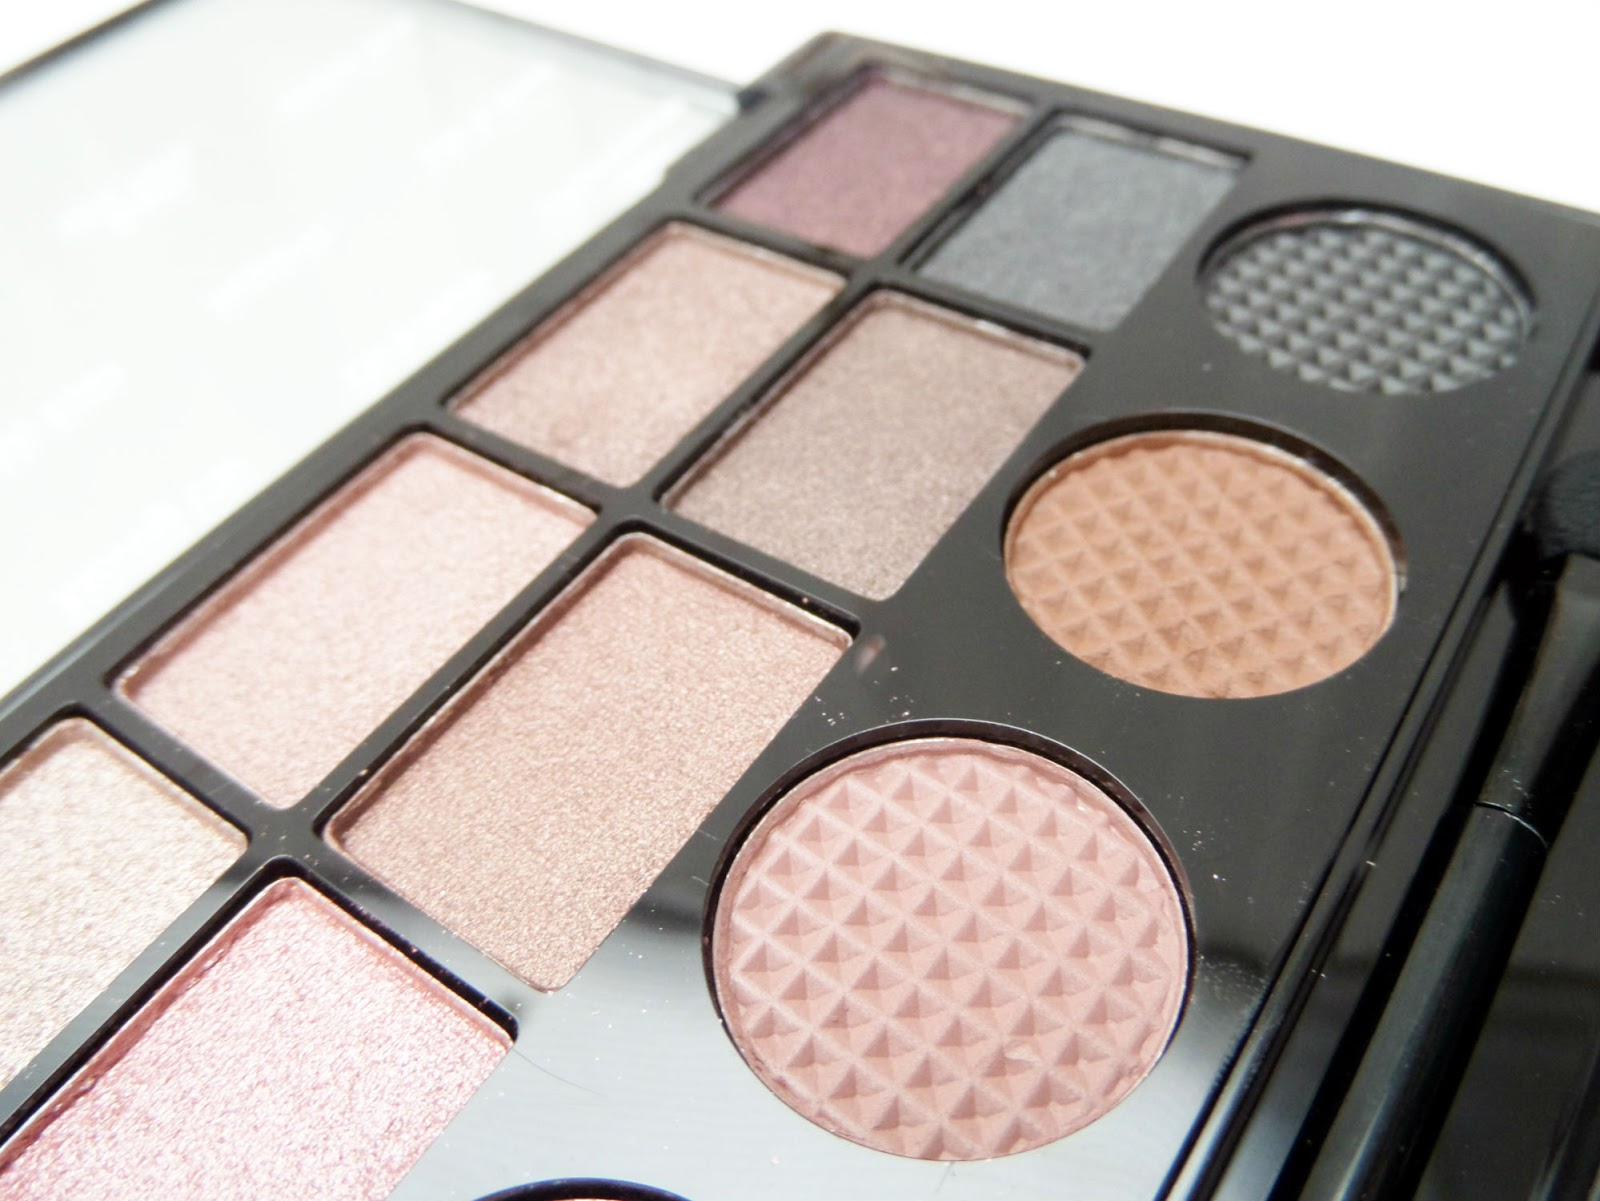 The Makeup Revolution 'What you waiting for' Eyeshadow Palette Swatches